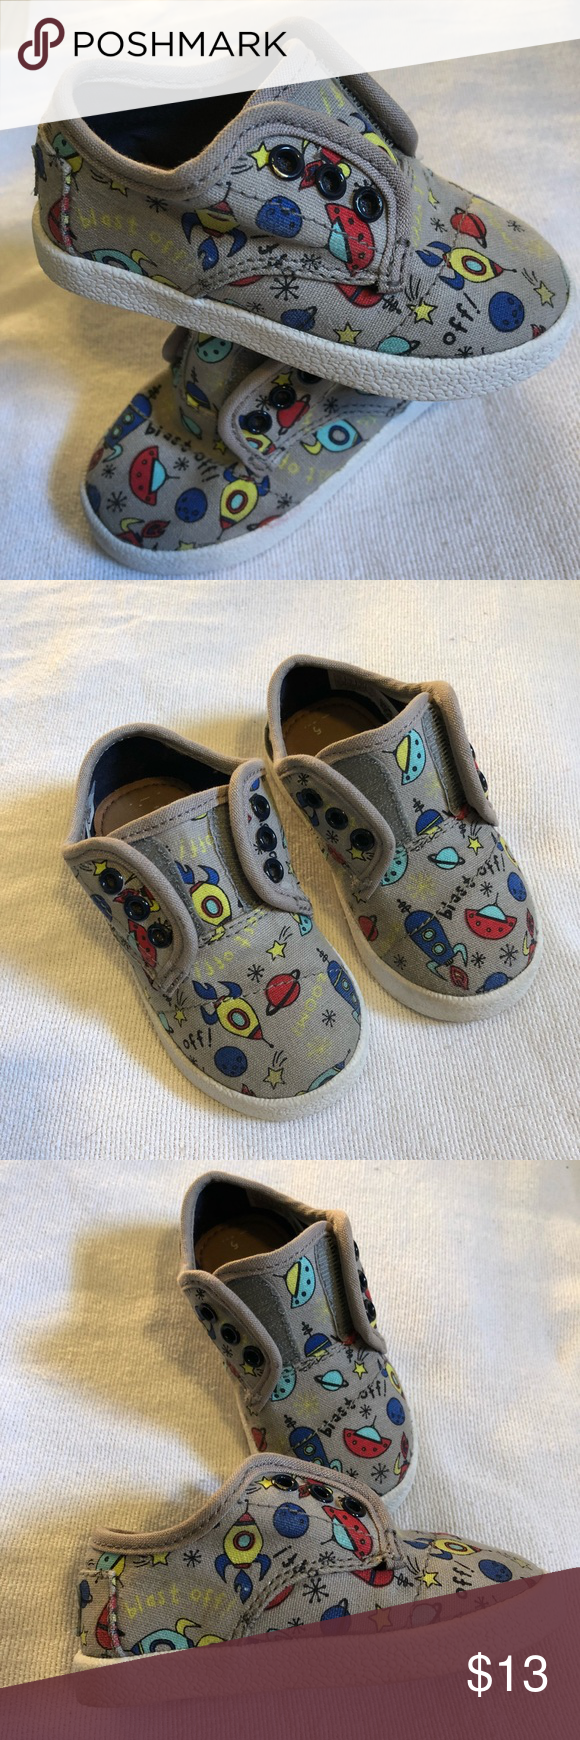 8683ca73efe 🎯🏆HOST PICK🏆🎯TOMS Toddler Shoe s Size 5 Tom s Grey Space themed toddler  shoe s size 5. Some light wear. Nothing major. No stains